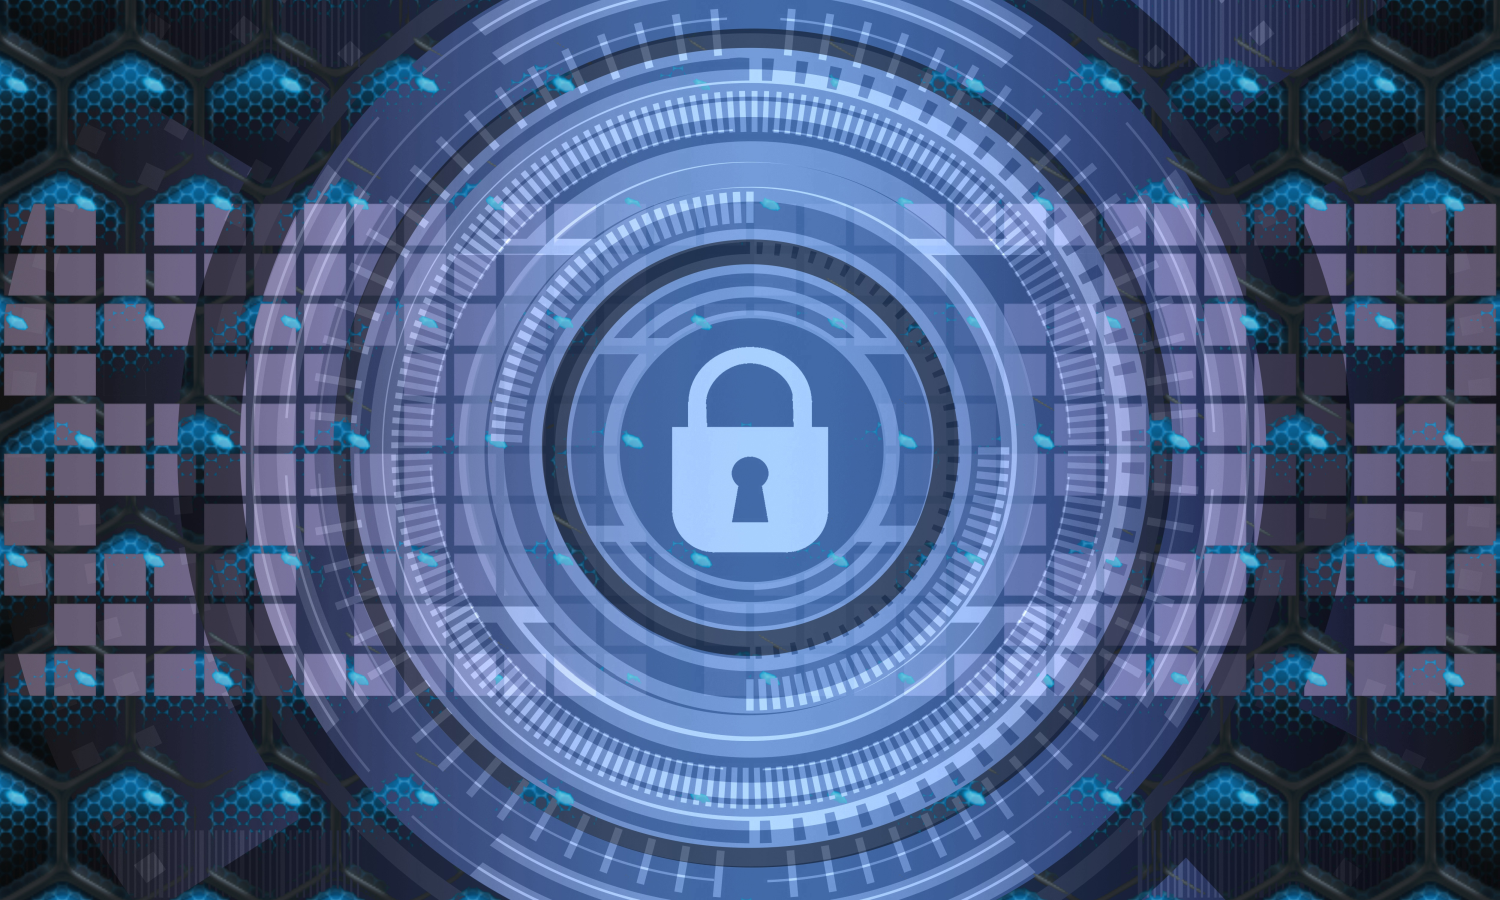 Cyber security starts with good critical thinking skills